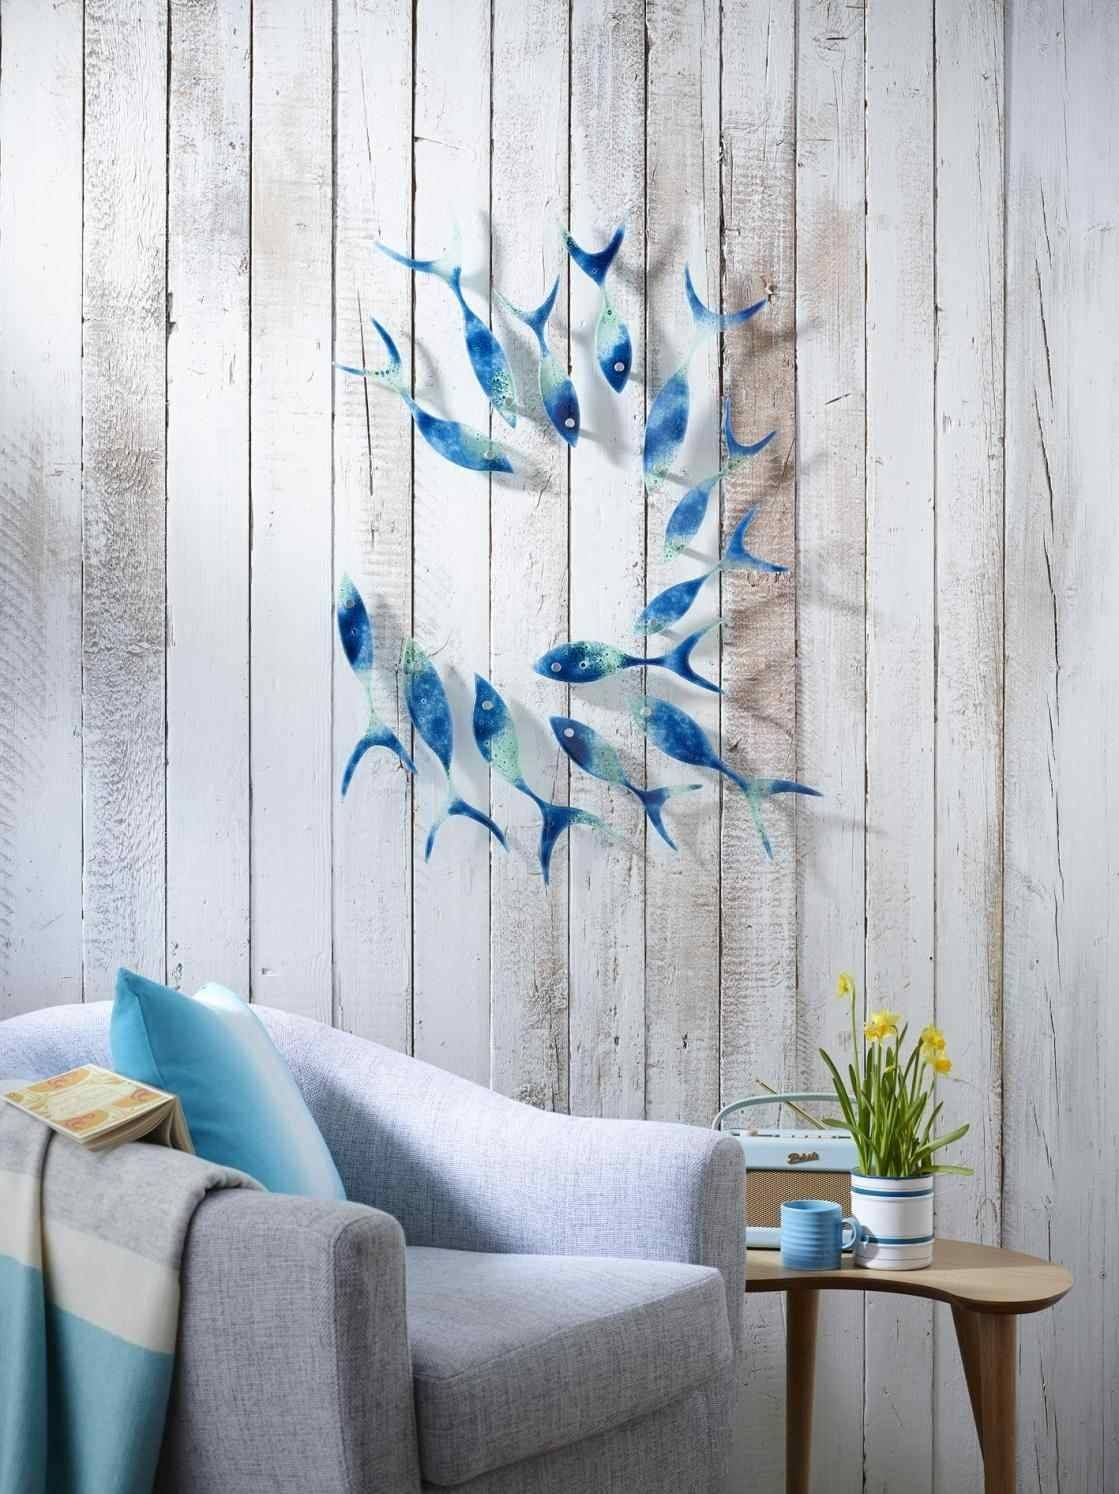 Metal Wall Art Fish Shoal | Home Interior Decor Throughout Best And Newest Shoal Of Fish Metal Wall Art (View 5 of 30)